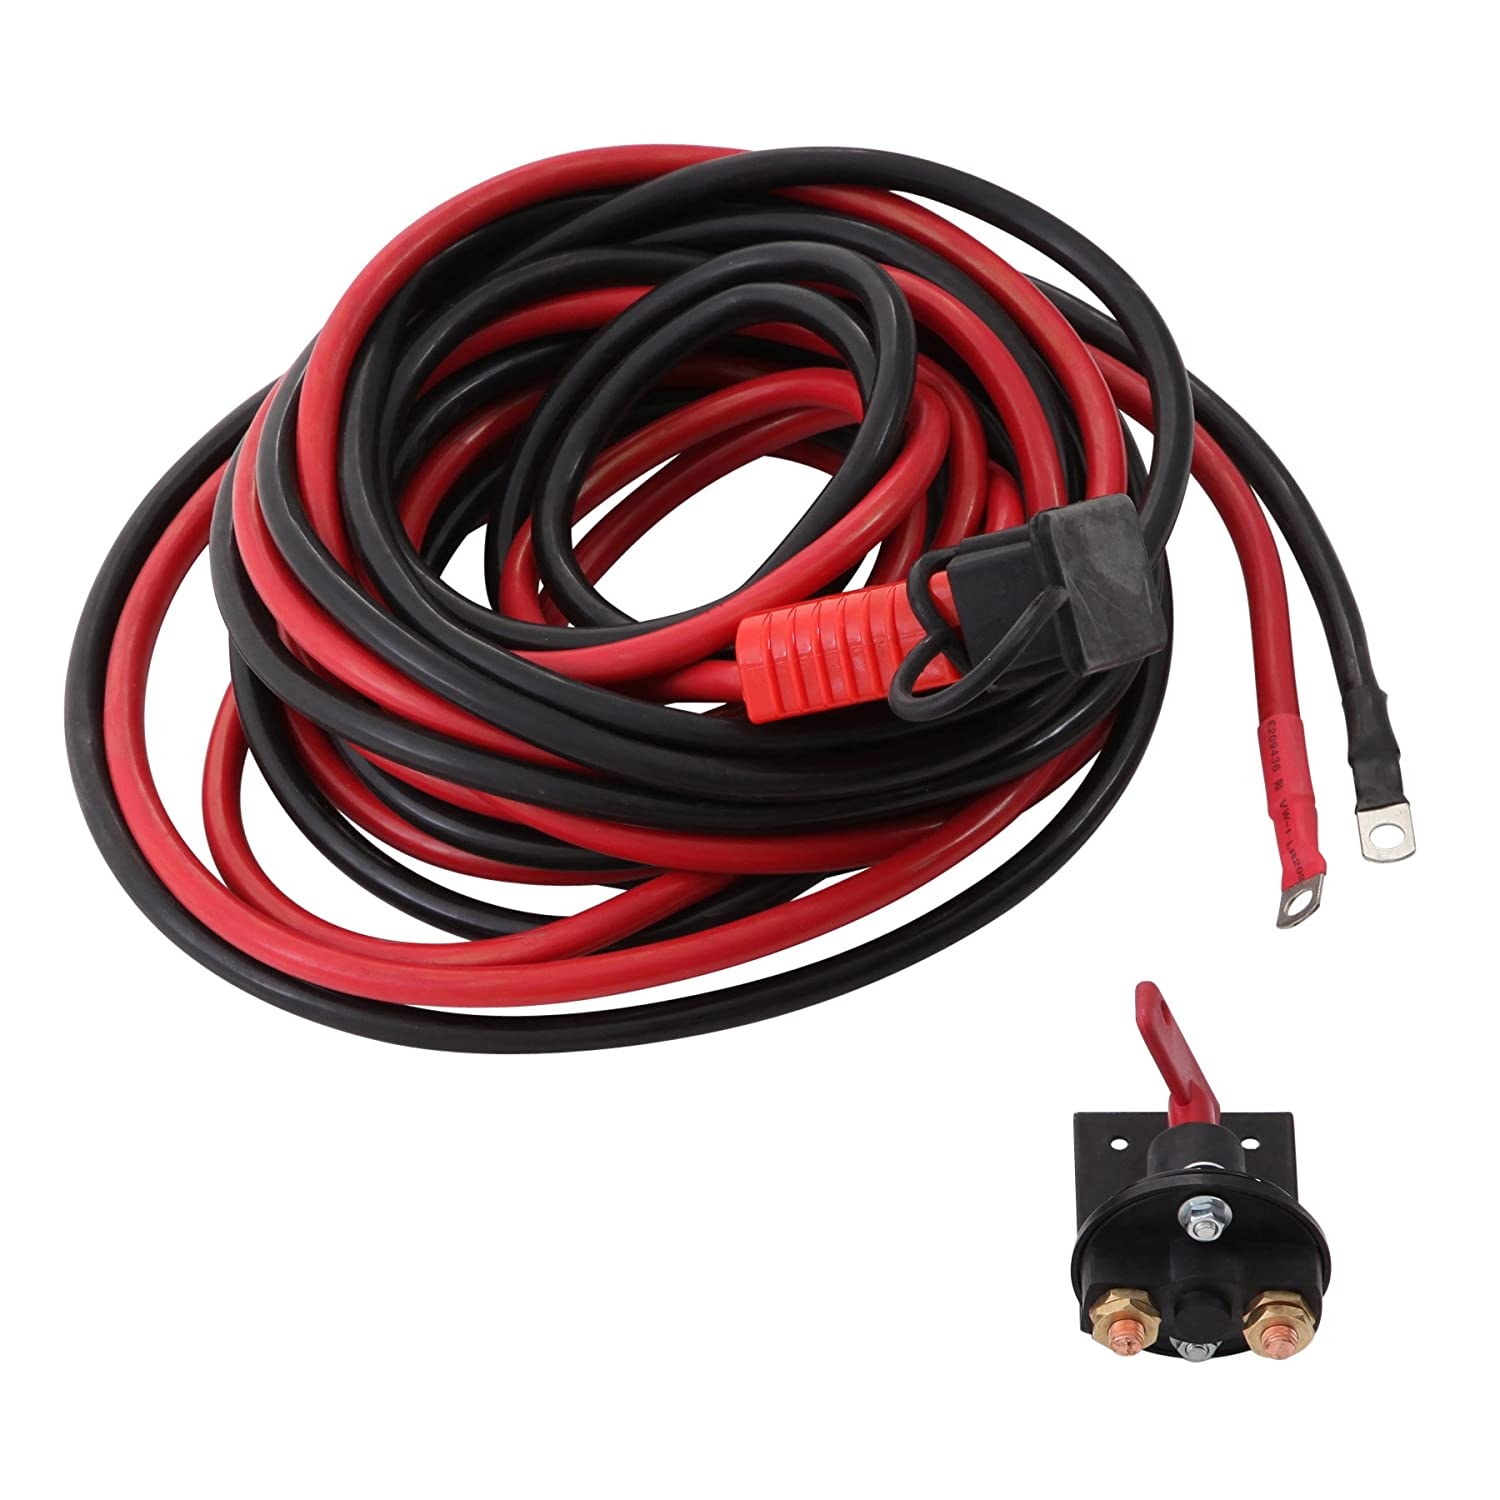 Smittybilt 35210 24 Winch Connector Kit Wiring A Utility Trailer With Four Way Plug Moreover Products Automotive